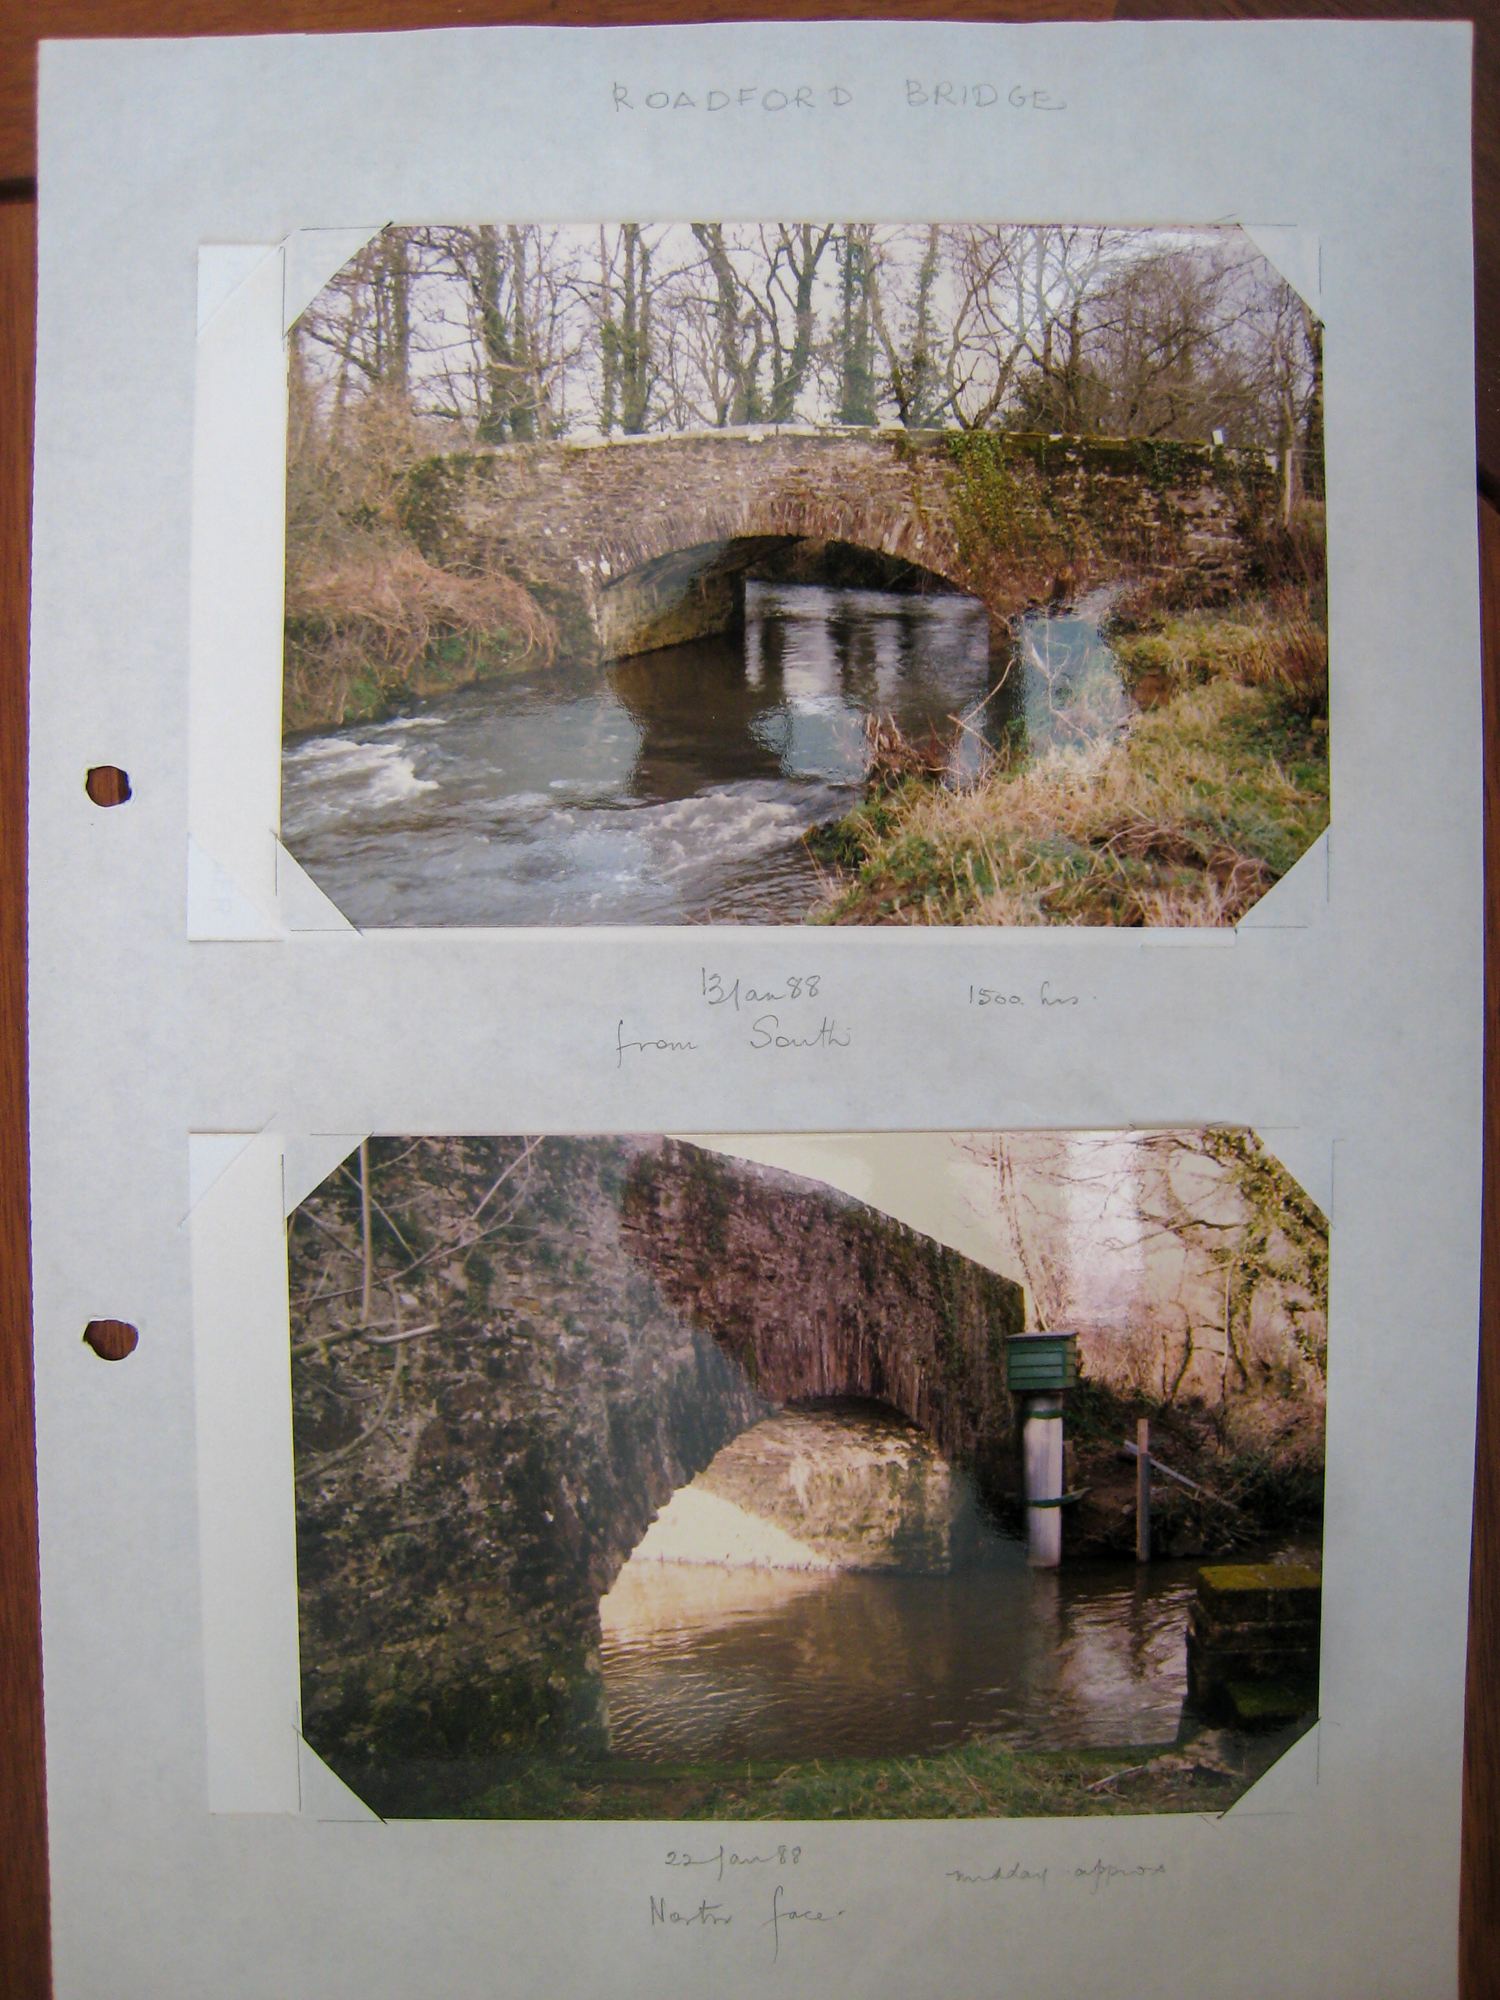 The Bridge over the River Wolf at Roadford, January 1988